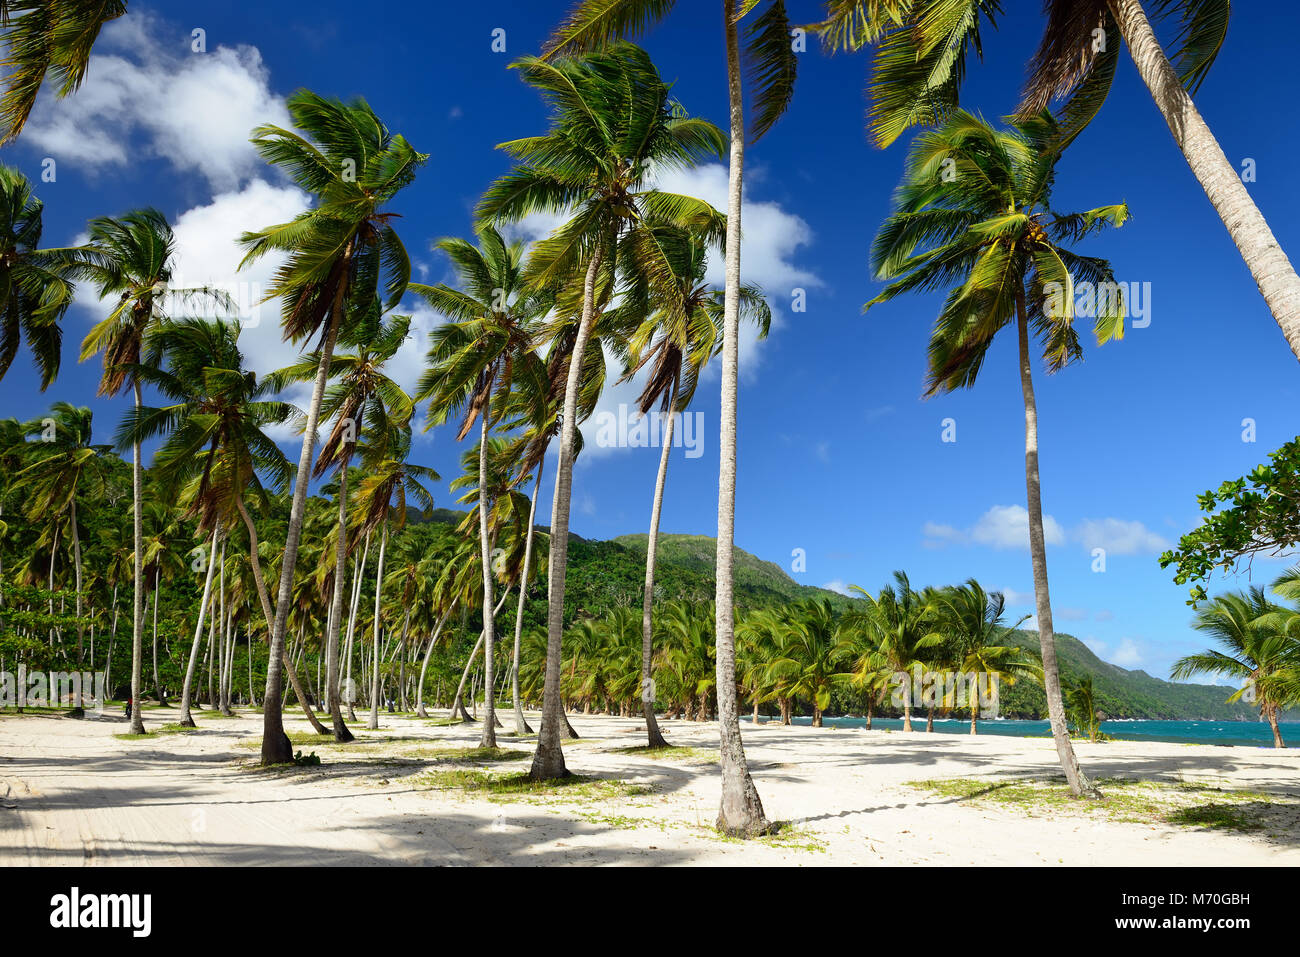 The Rincon beach on Dominican Republic. - Stock Image